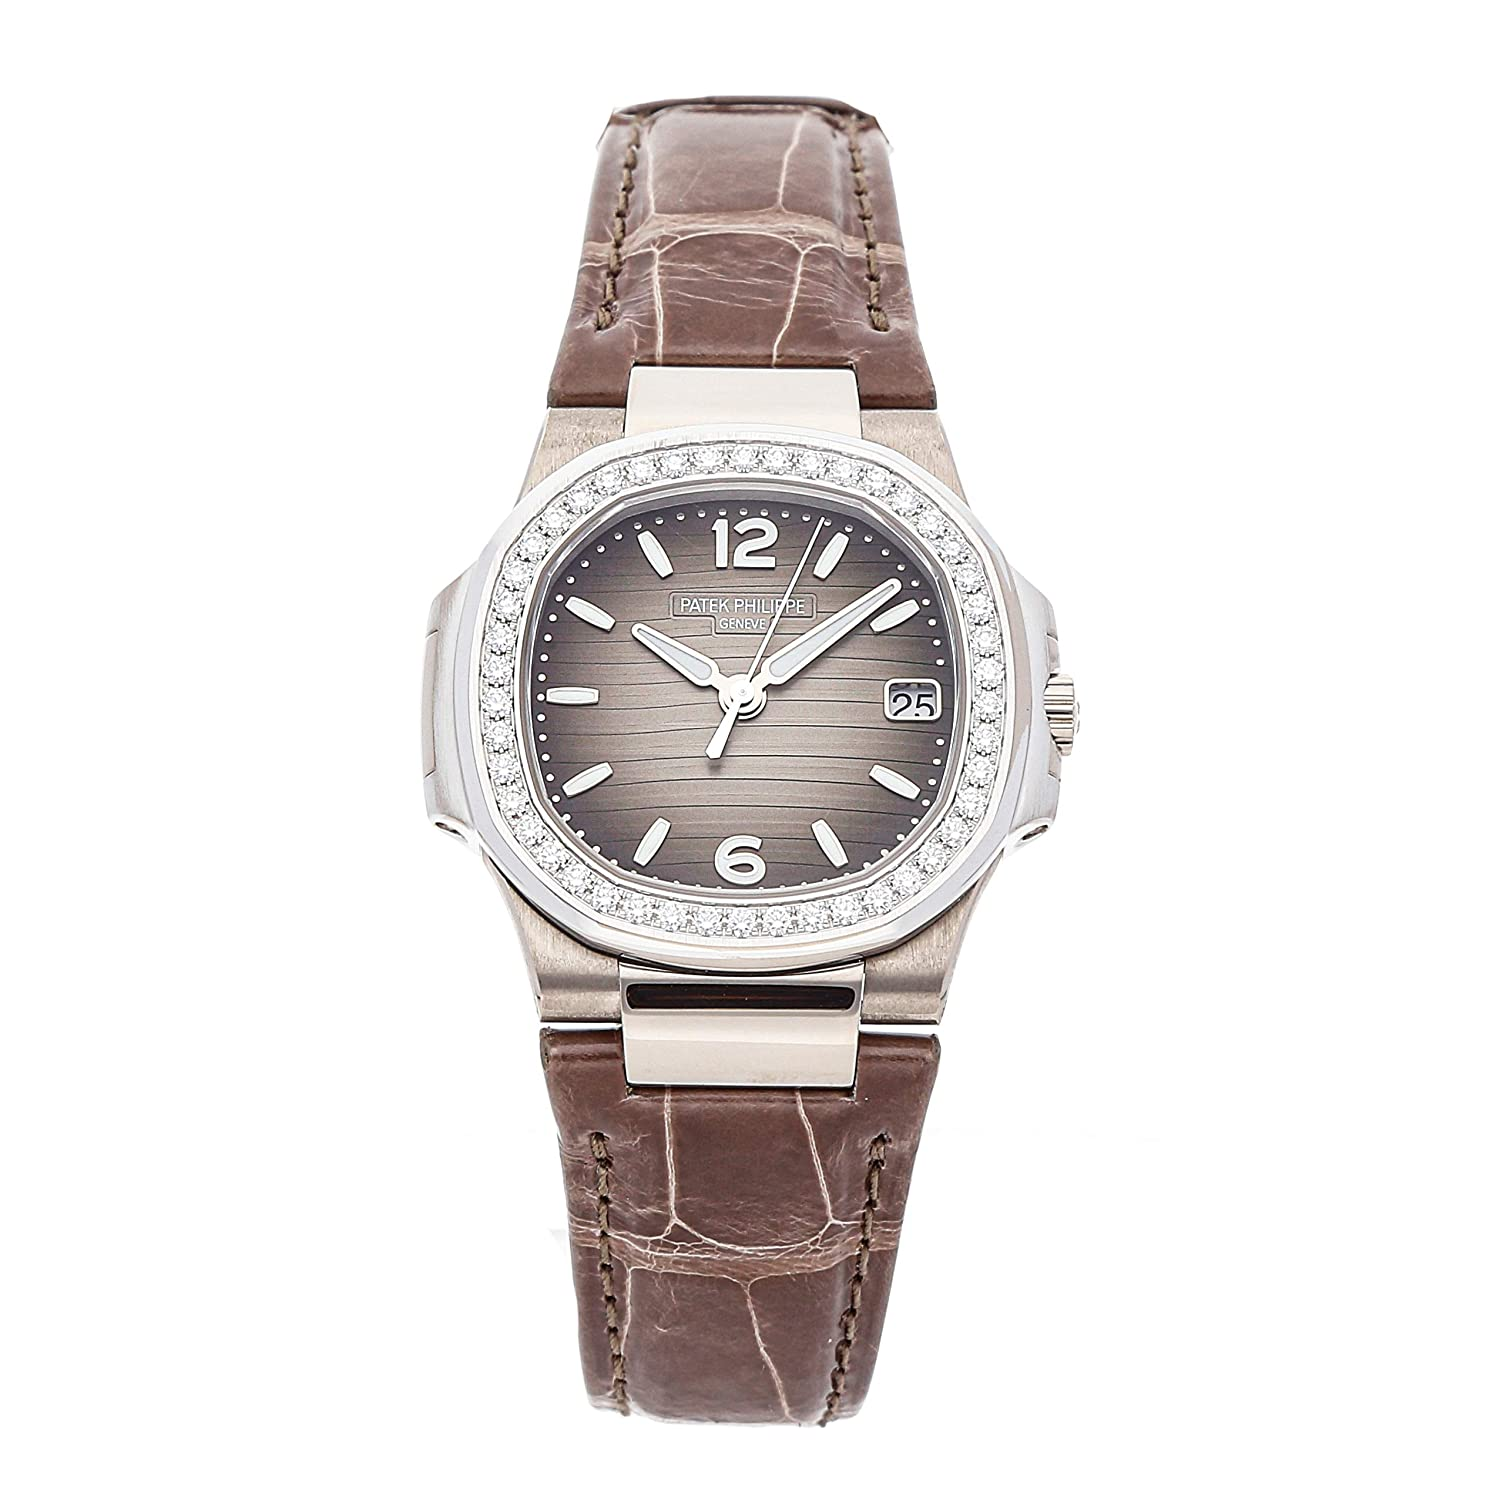 Patek Philippe Nautilus Quartz (Battery) Grey Dial Womens Watch 7010G-012 (Certified Pre-Owned)